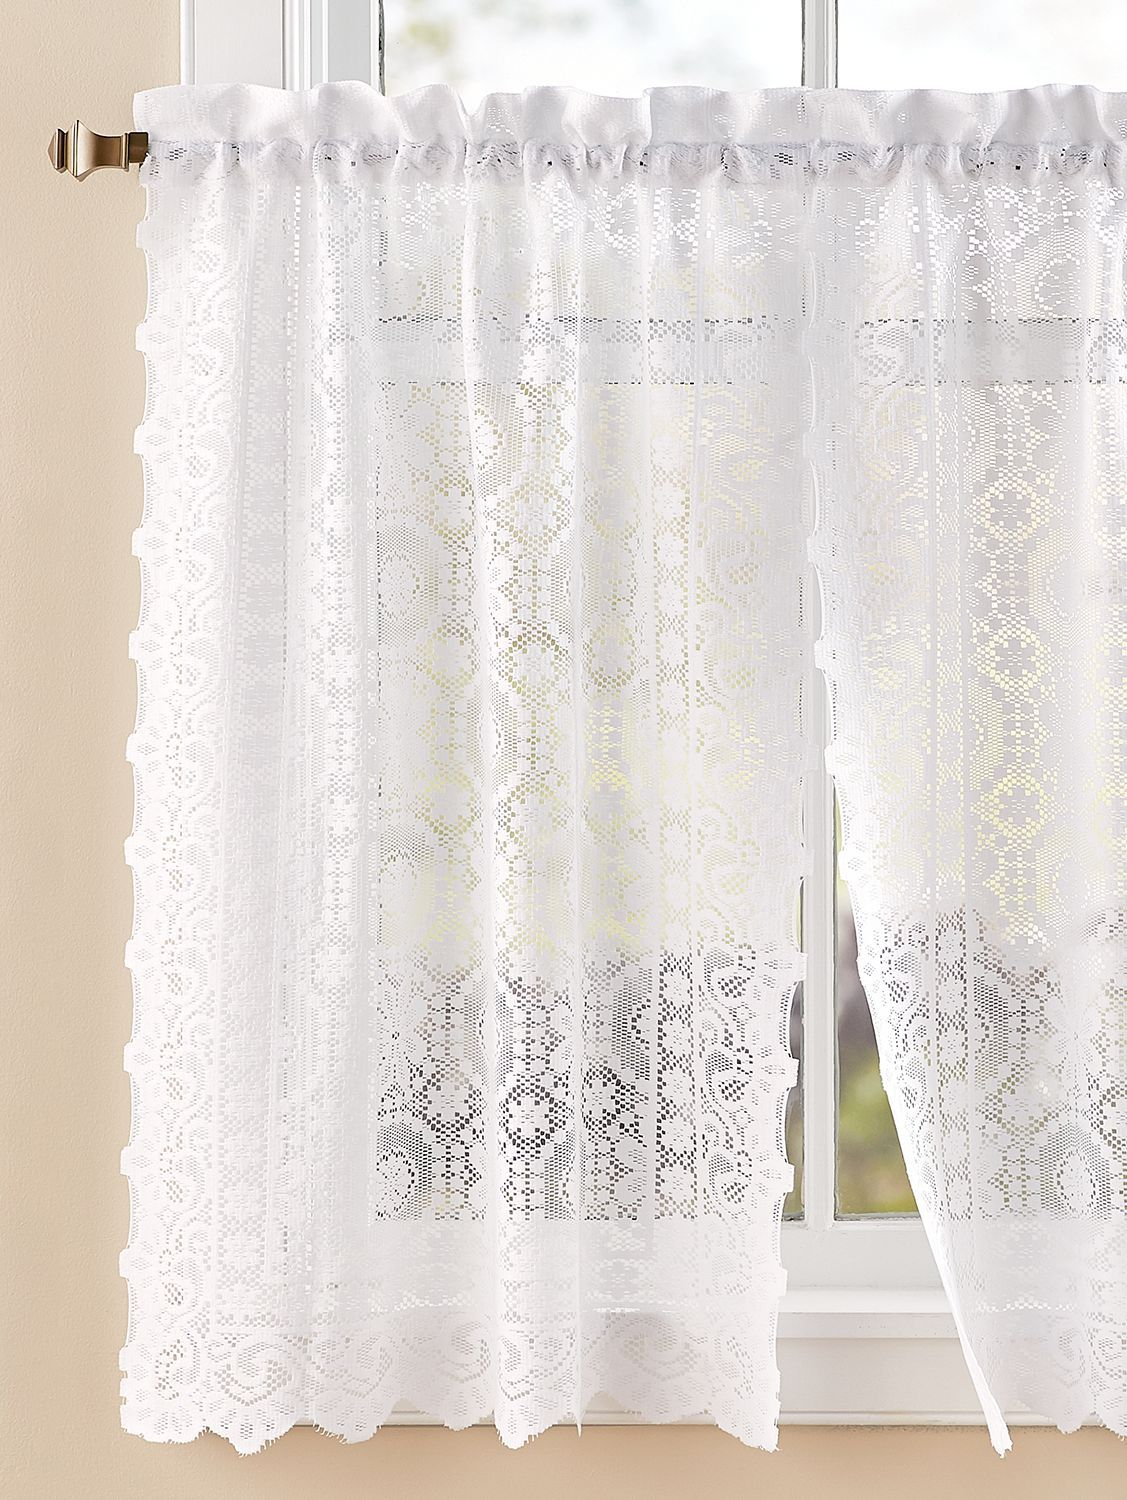 White Lace Curtains Curtain Panels